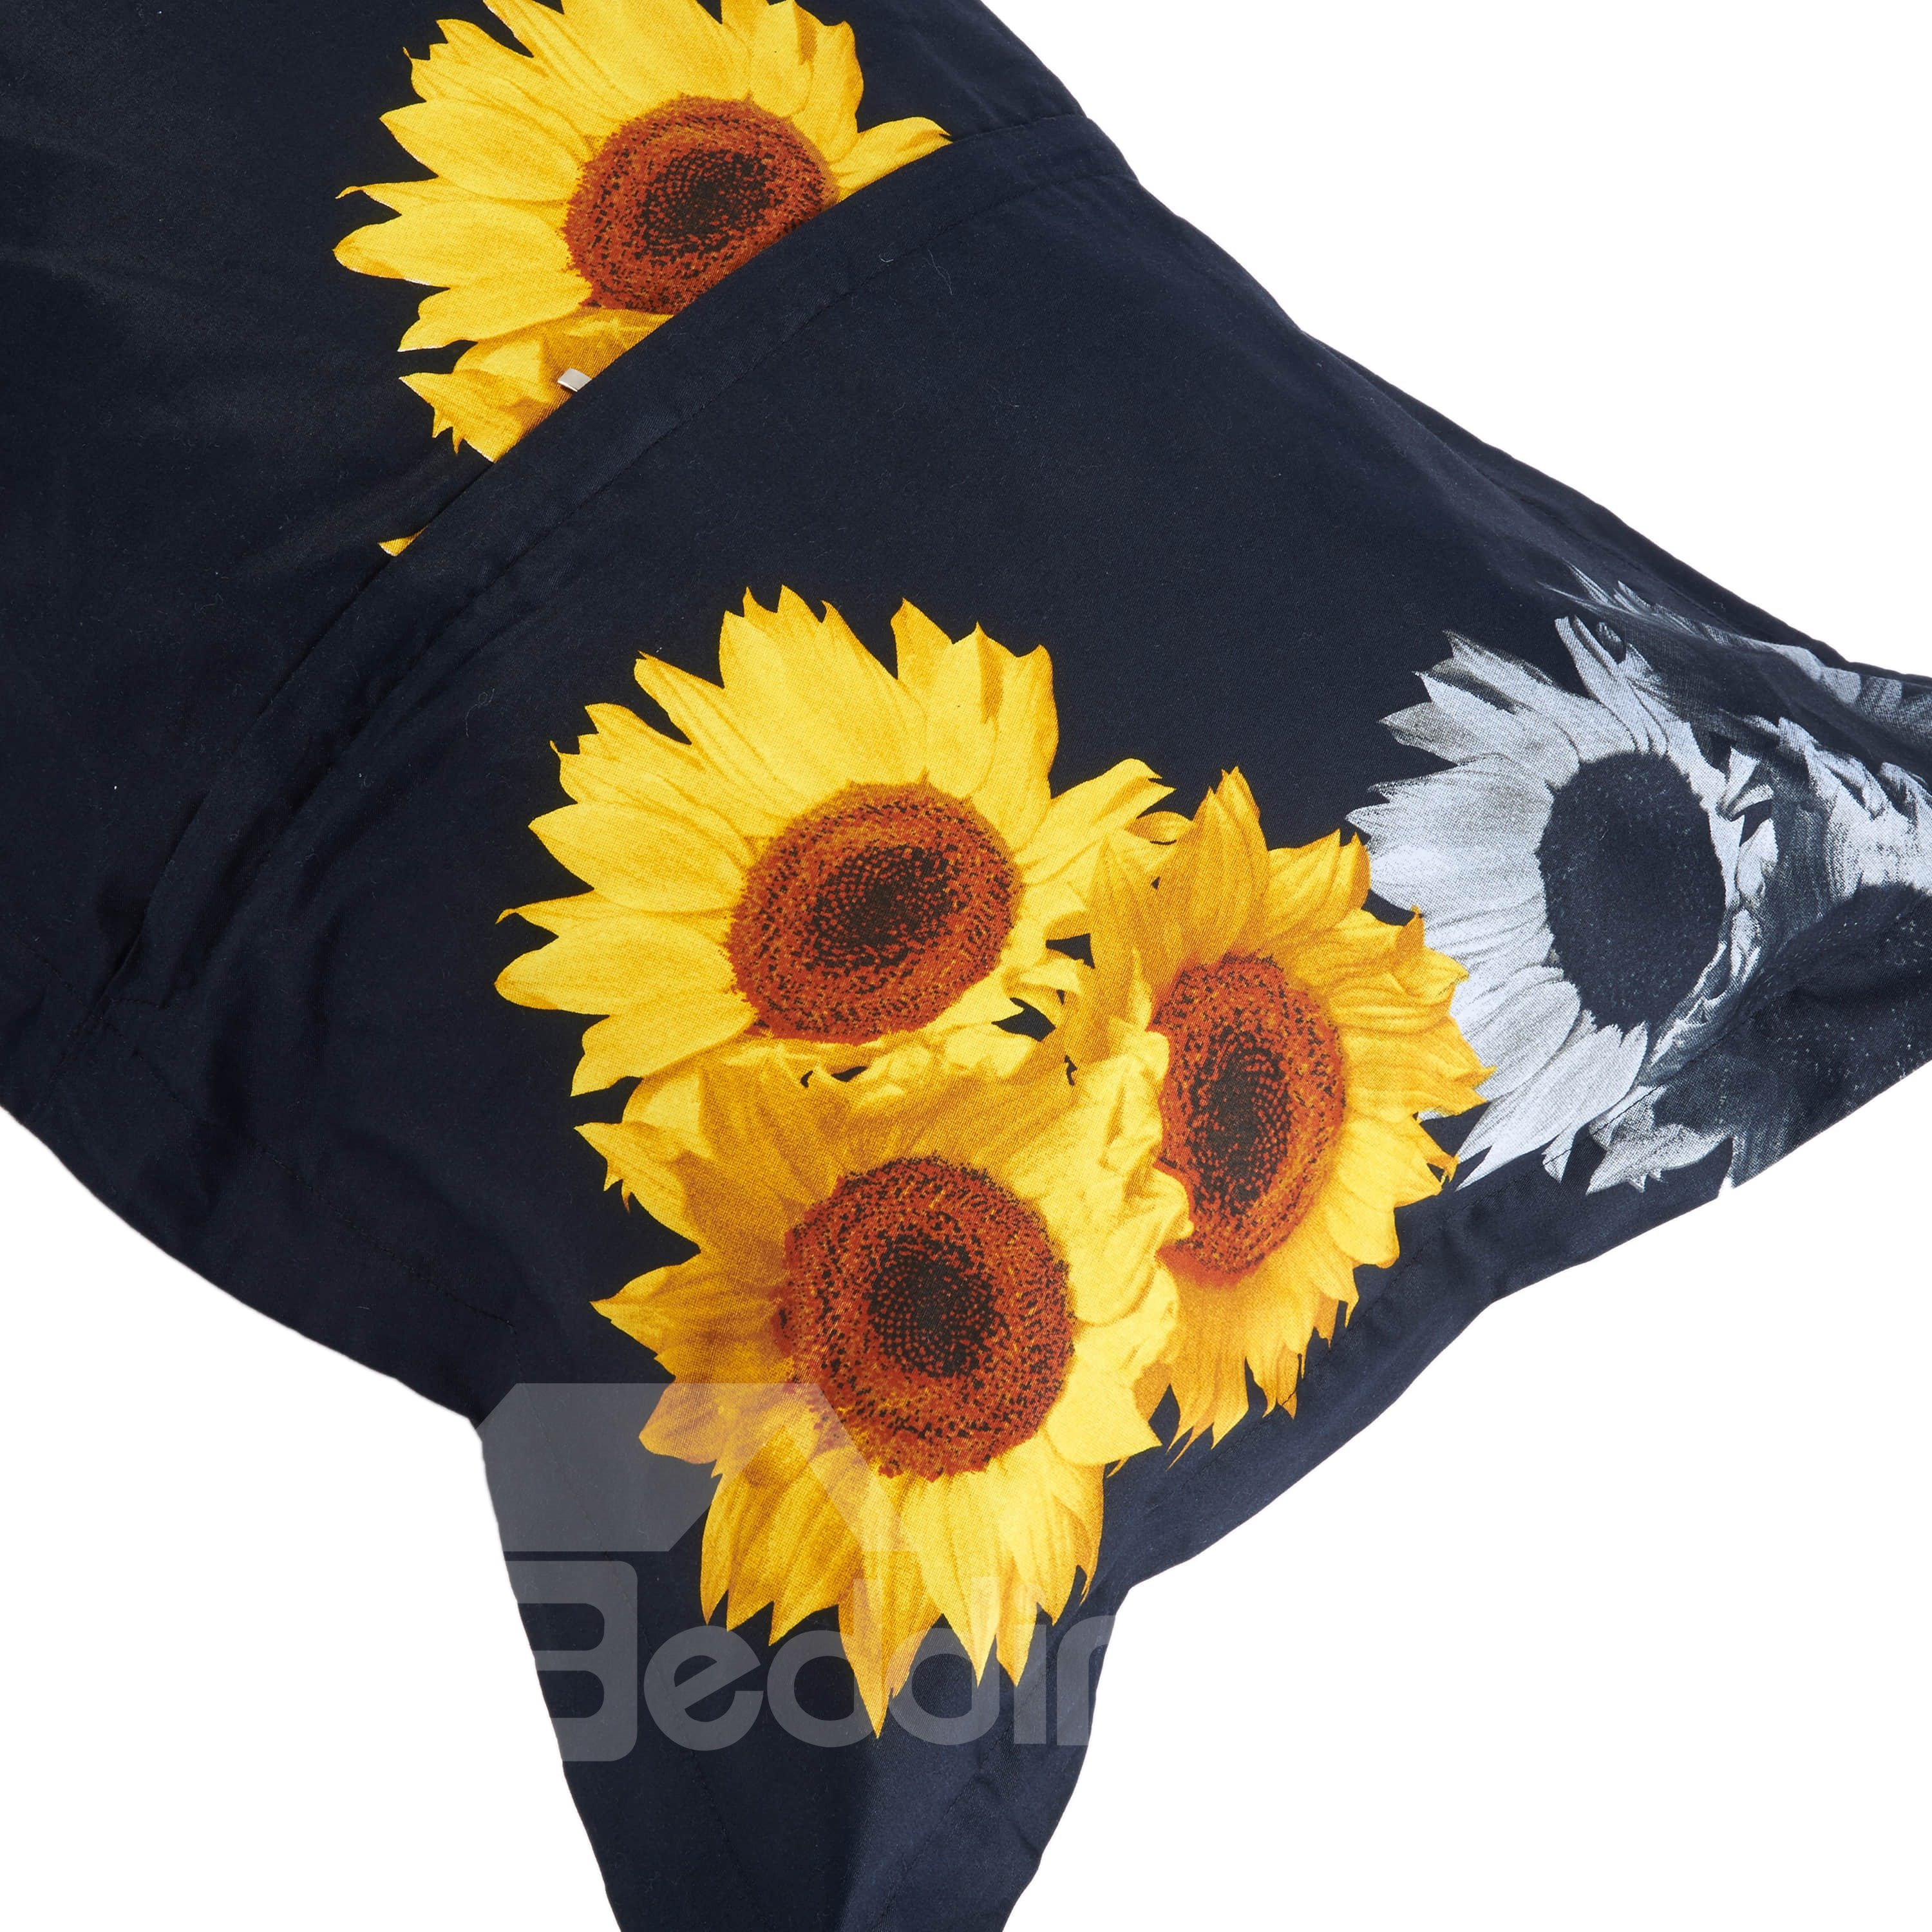 3D Sunflower Leopard Printed Cotton 4-Piece Black Bedding Sets/Duvet Cover